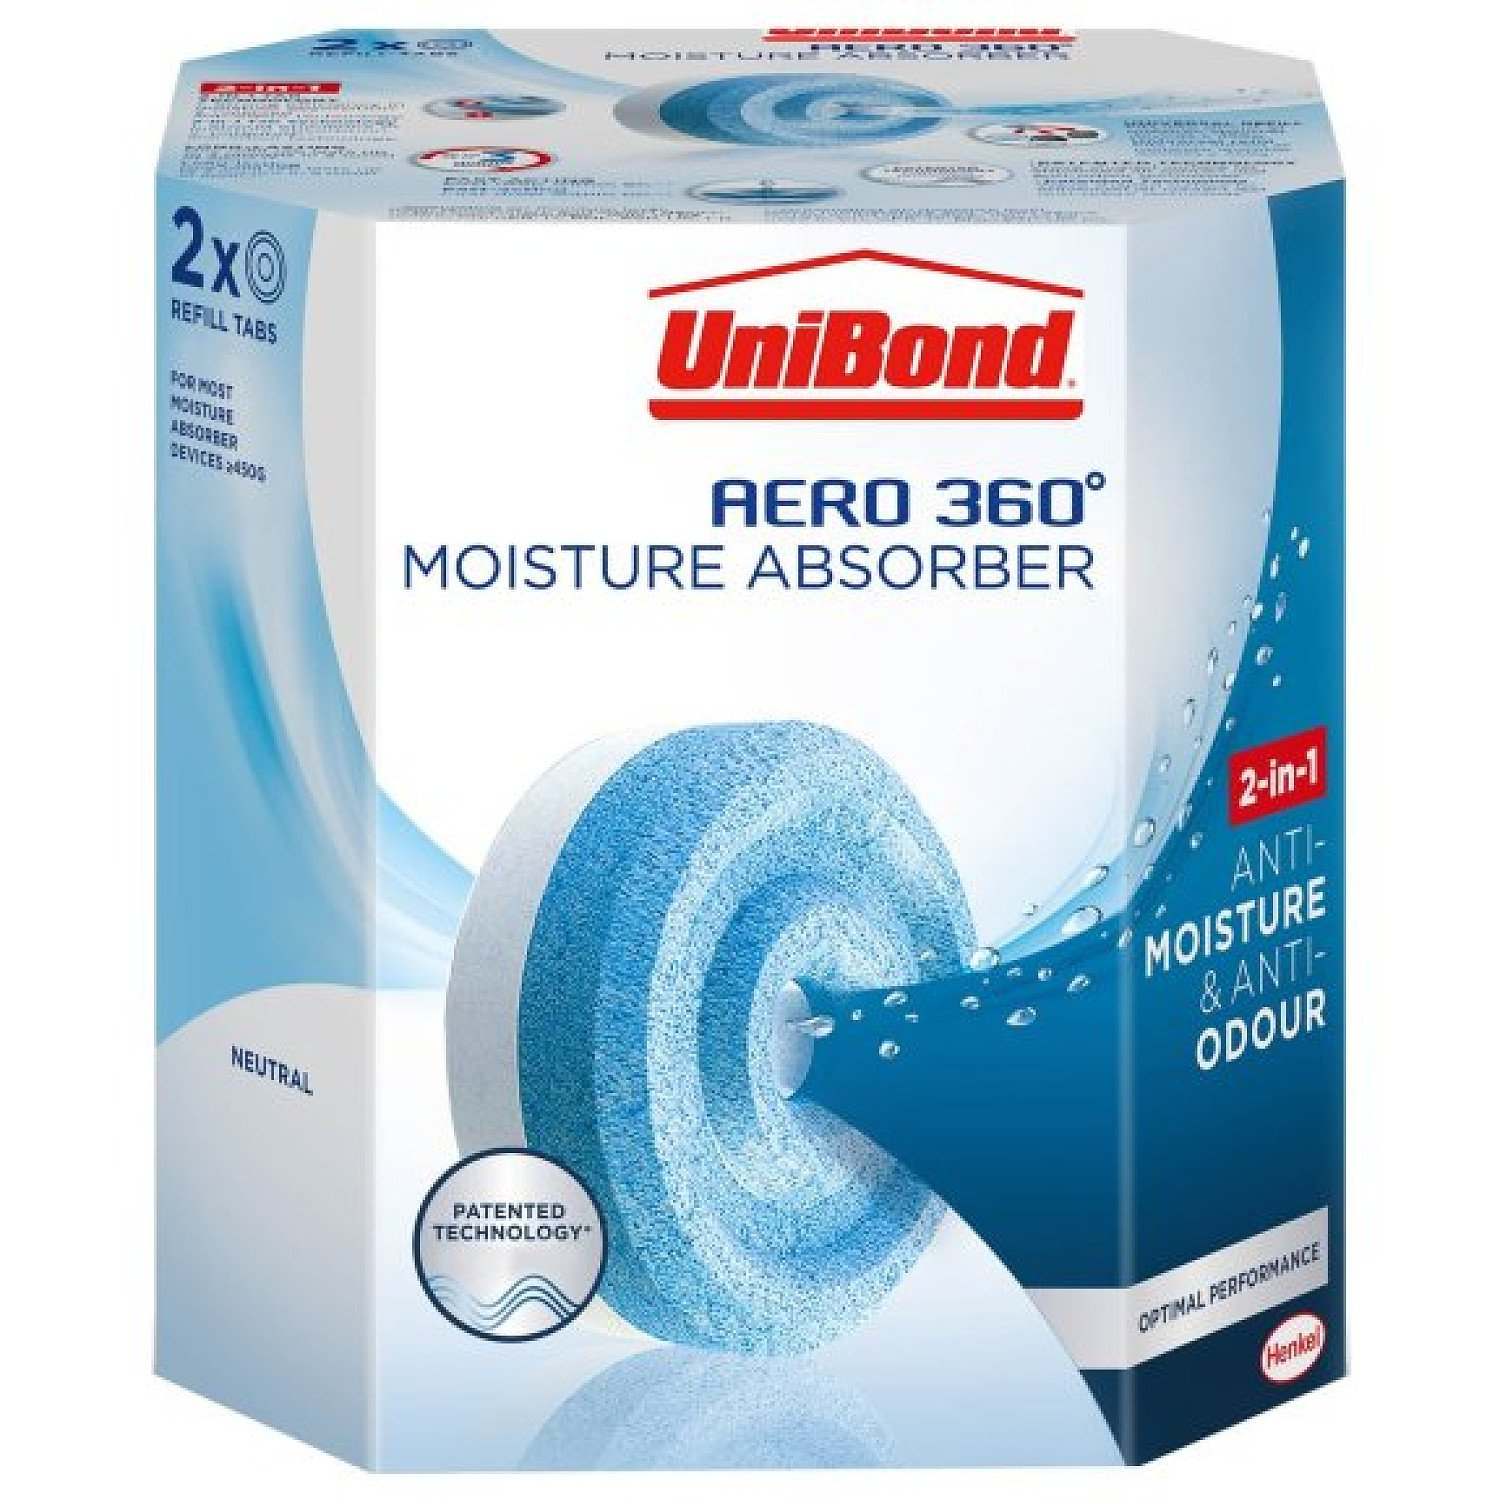 WE'RE OPEN, COME IN STORE - UniBond Aero 360 Moisture Absorber Refills 2 x 450g £5.49!